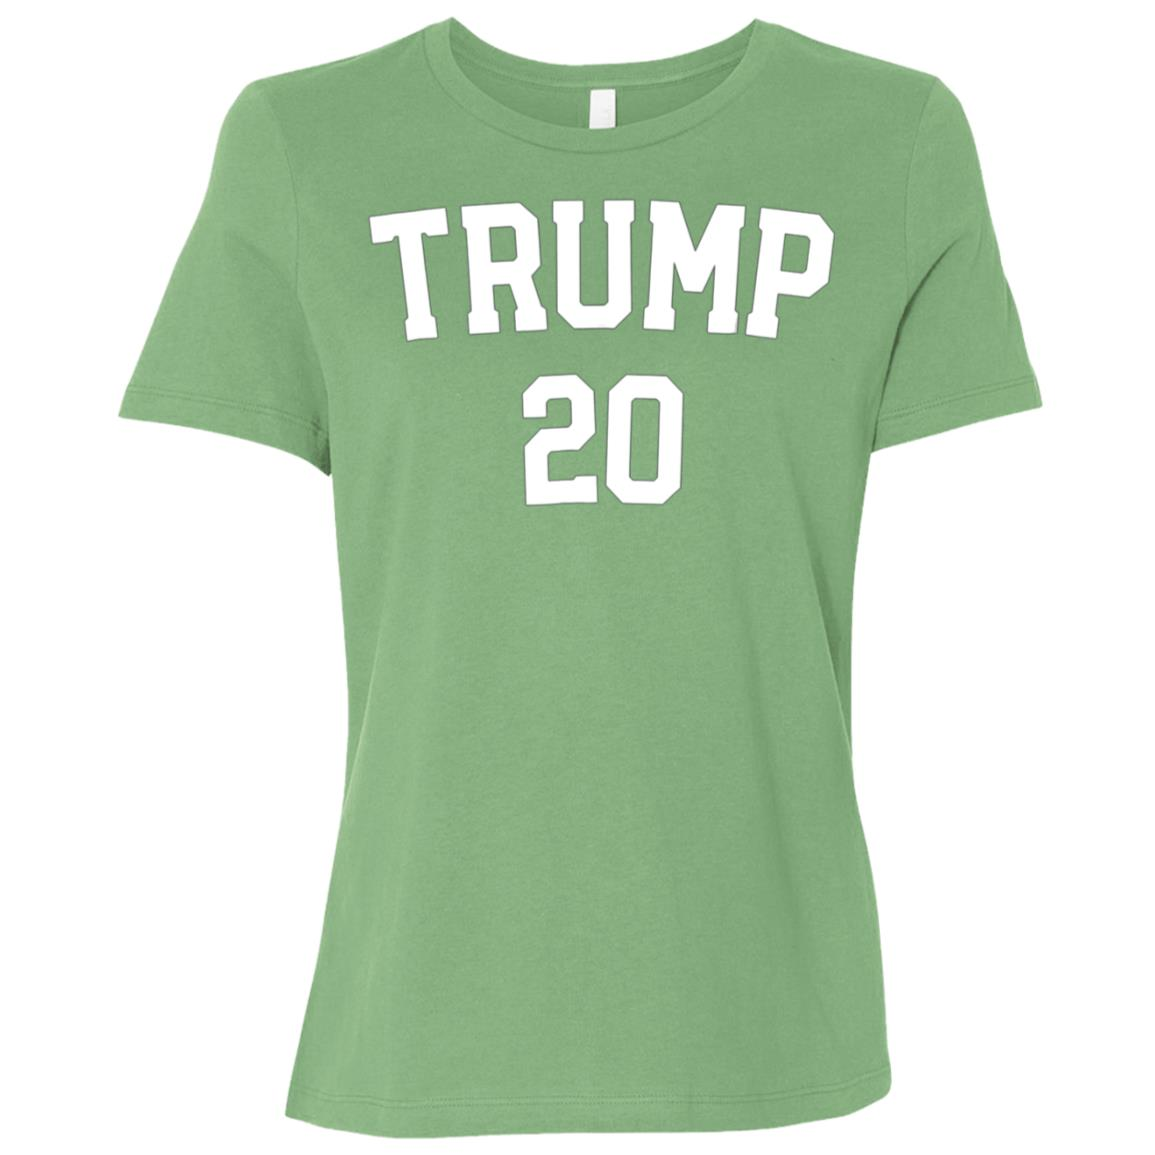 Trump 2020 Re-elect Make Usa Great Again Gop political Women Short Sleeve T-Shirt